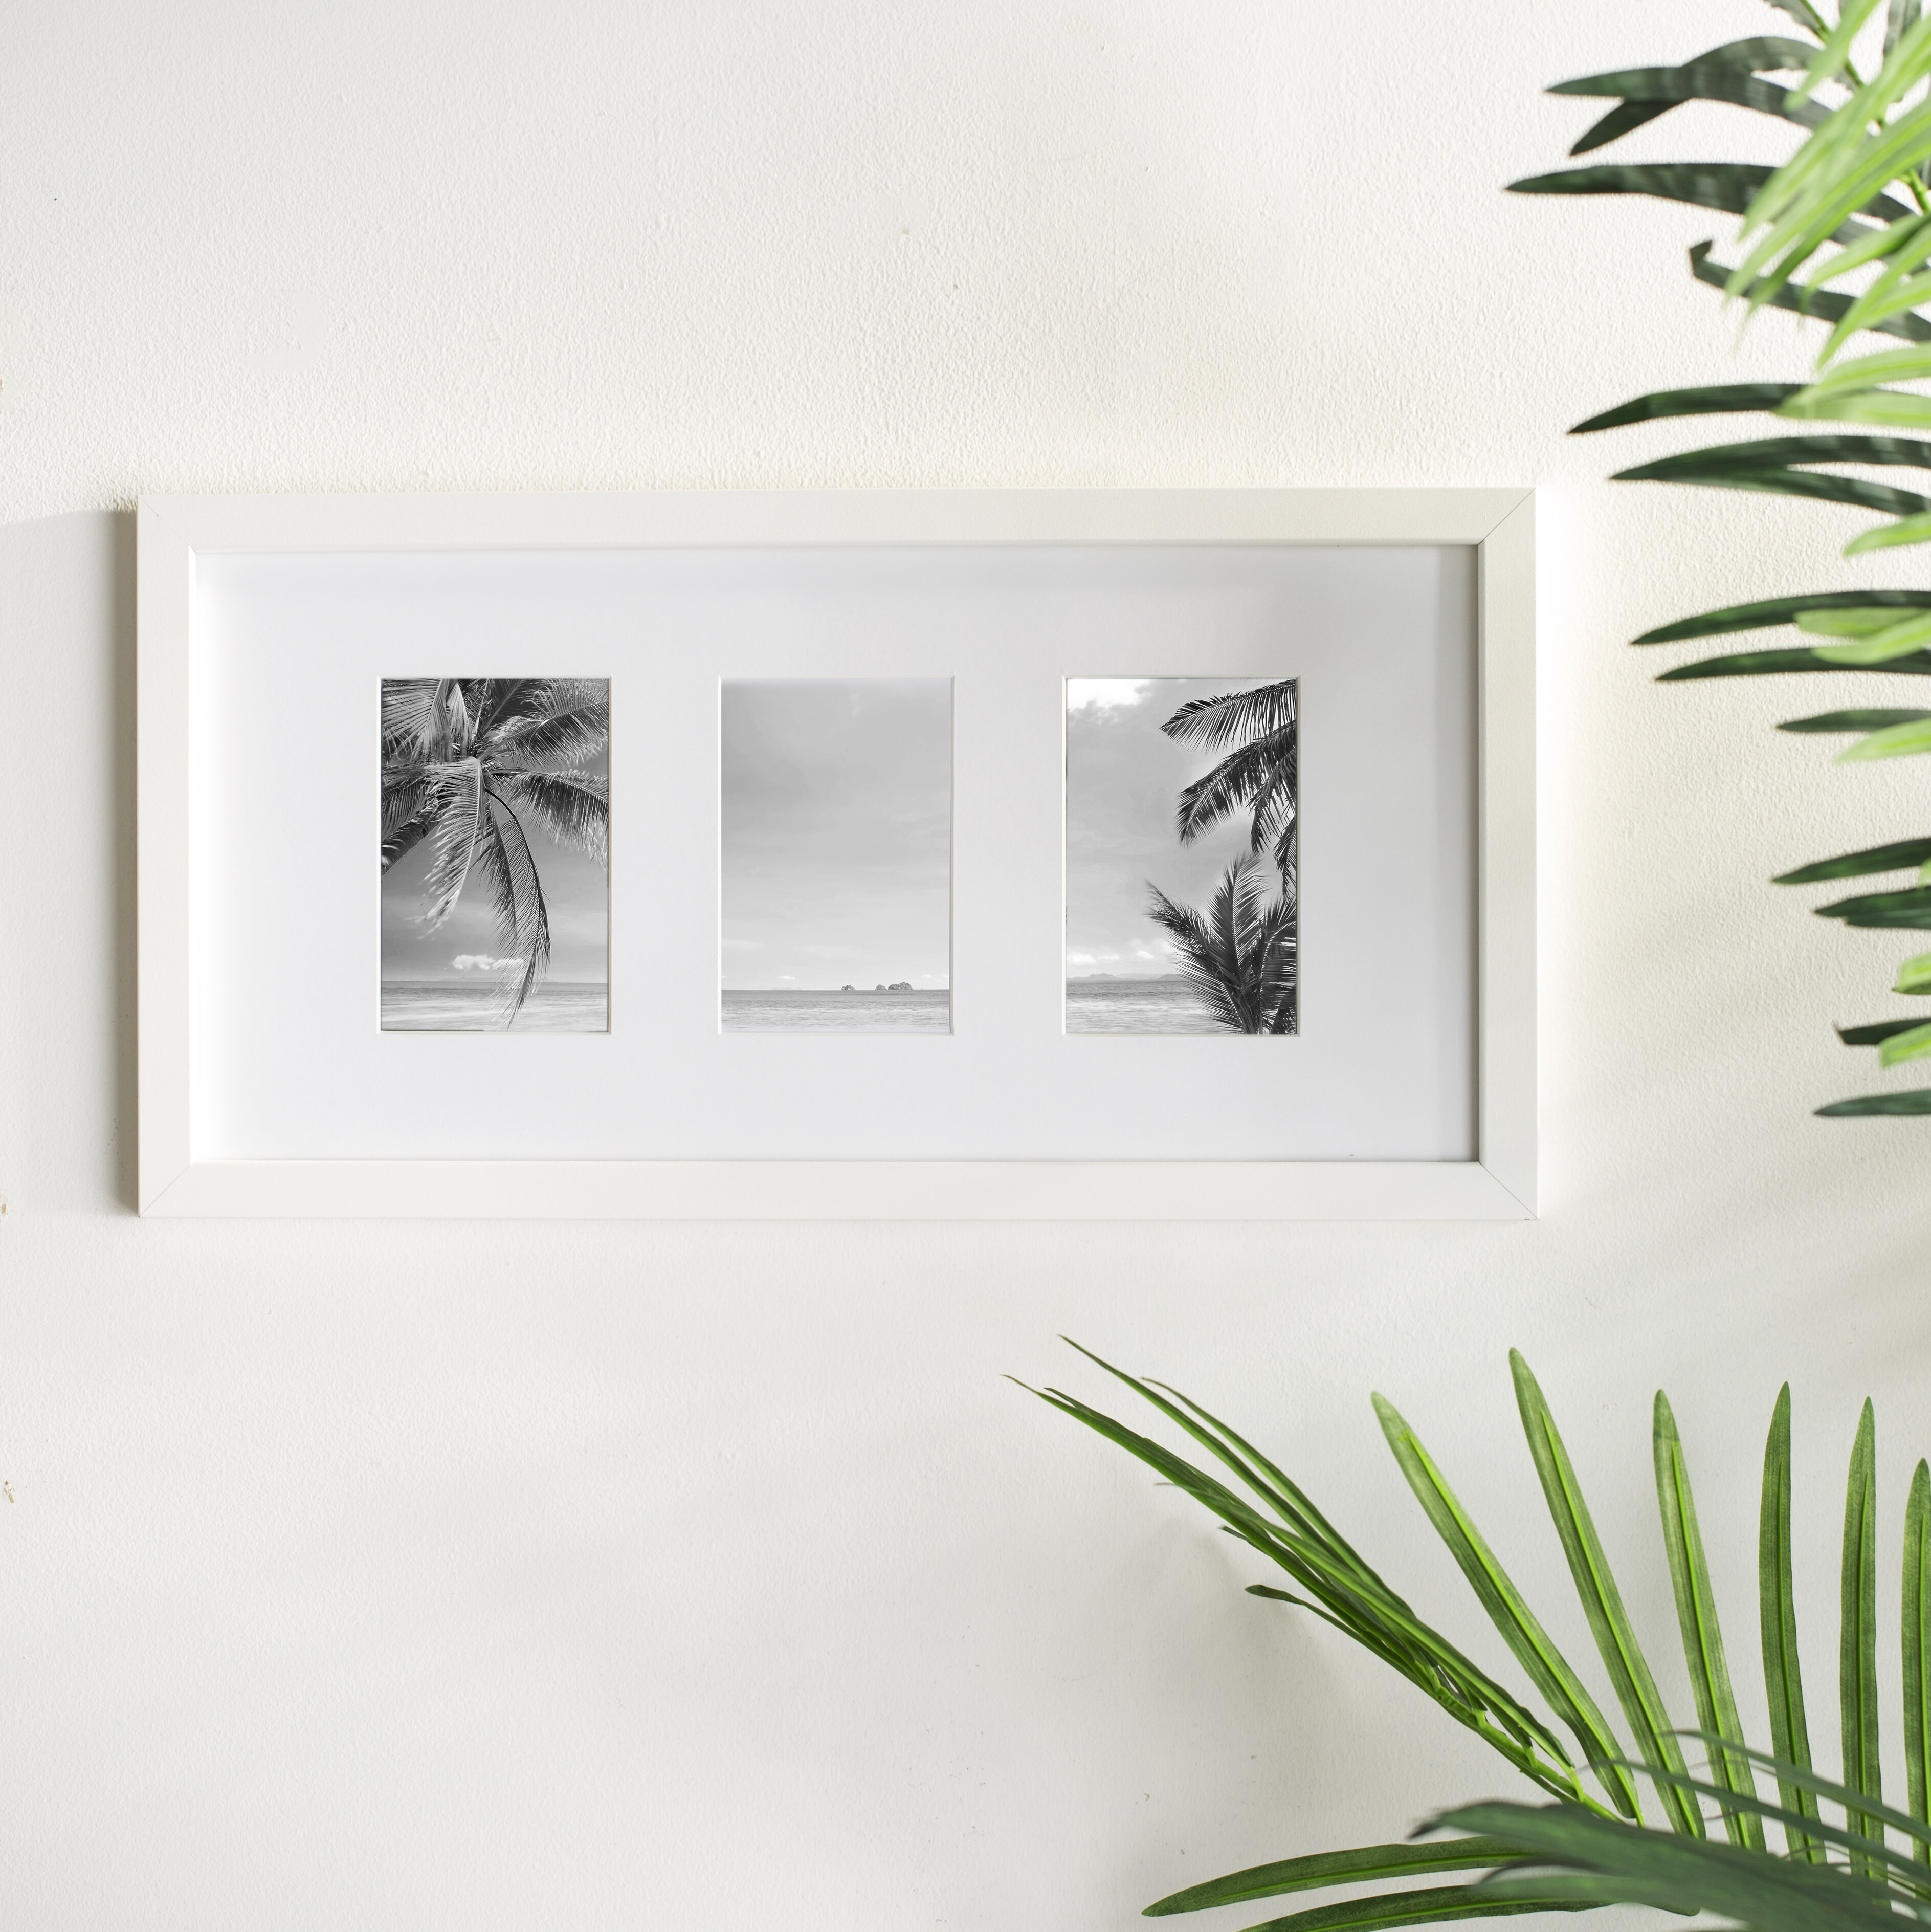 4 X 6 Triple Picture Frames You Ll Love In 2021 Wayfair